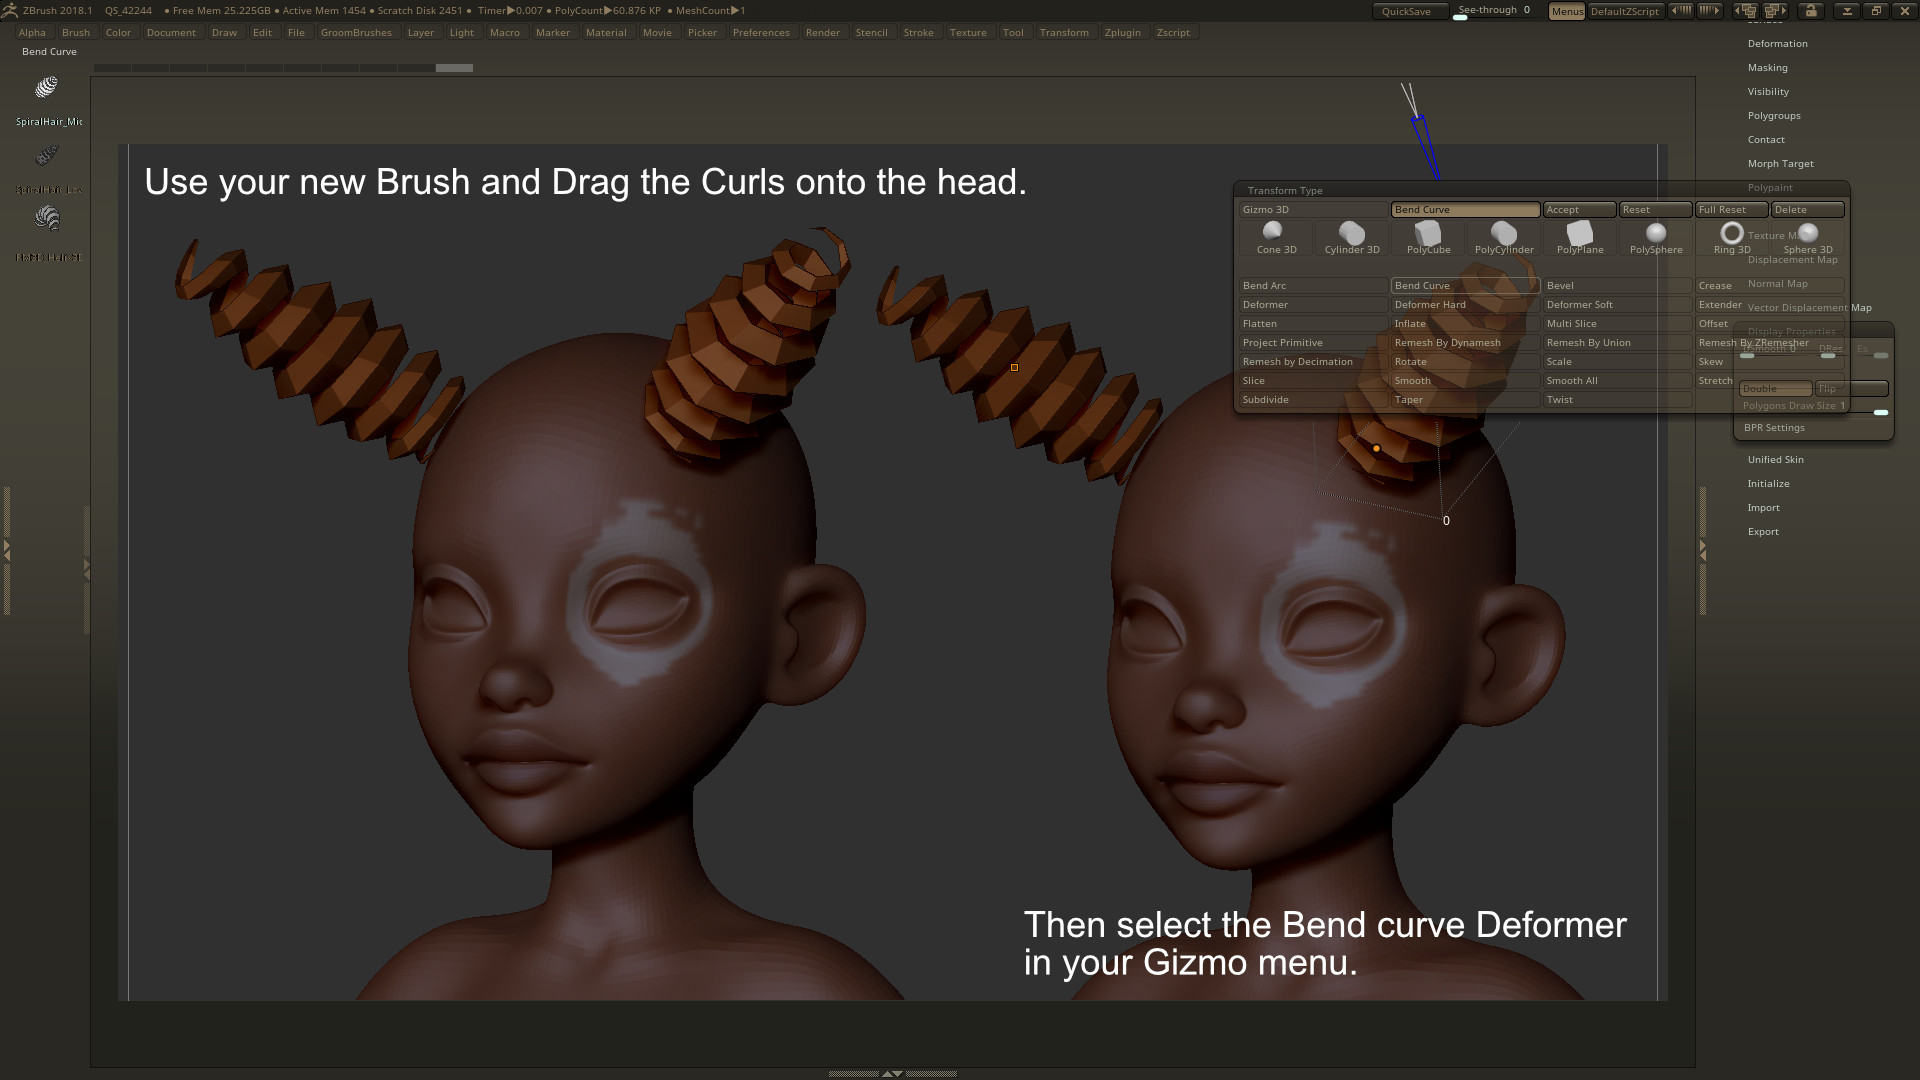 Drag the Curls onto the Mesh and select the Bend curve deformer in the Gizmo menu.